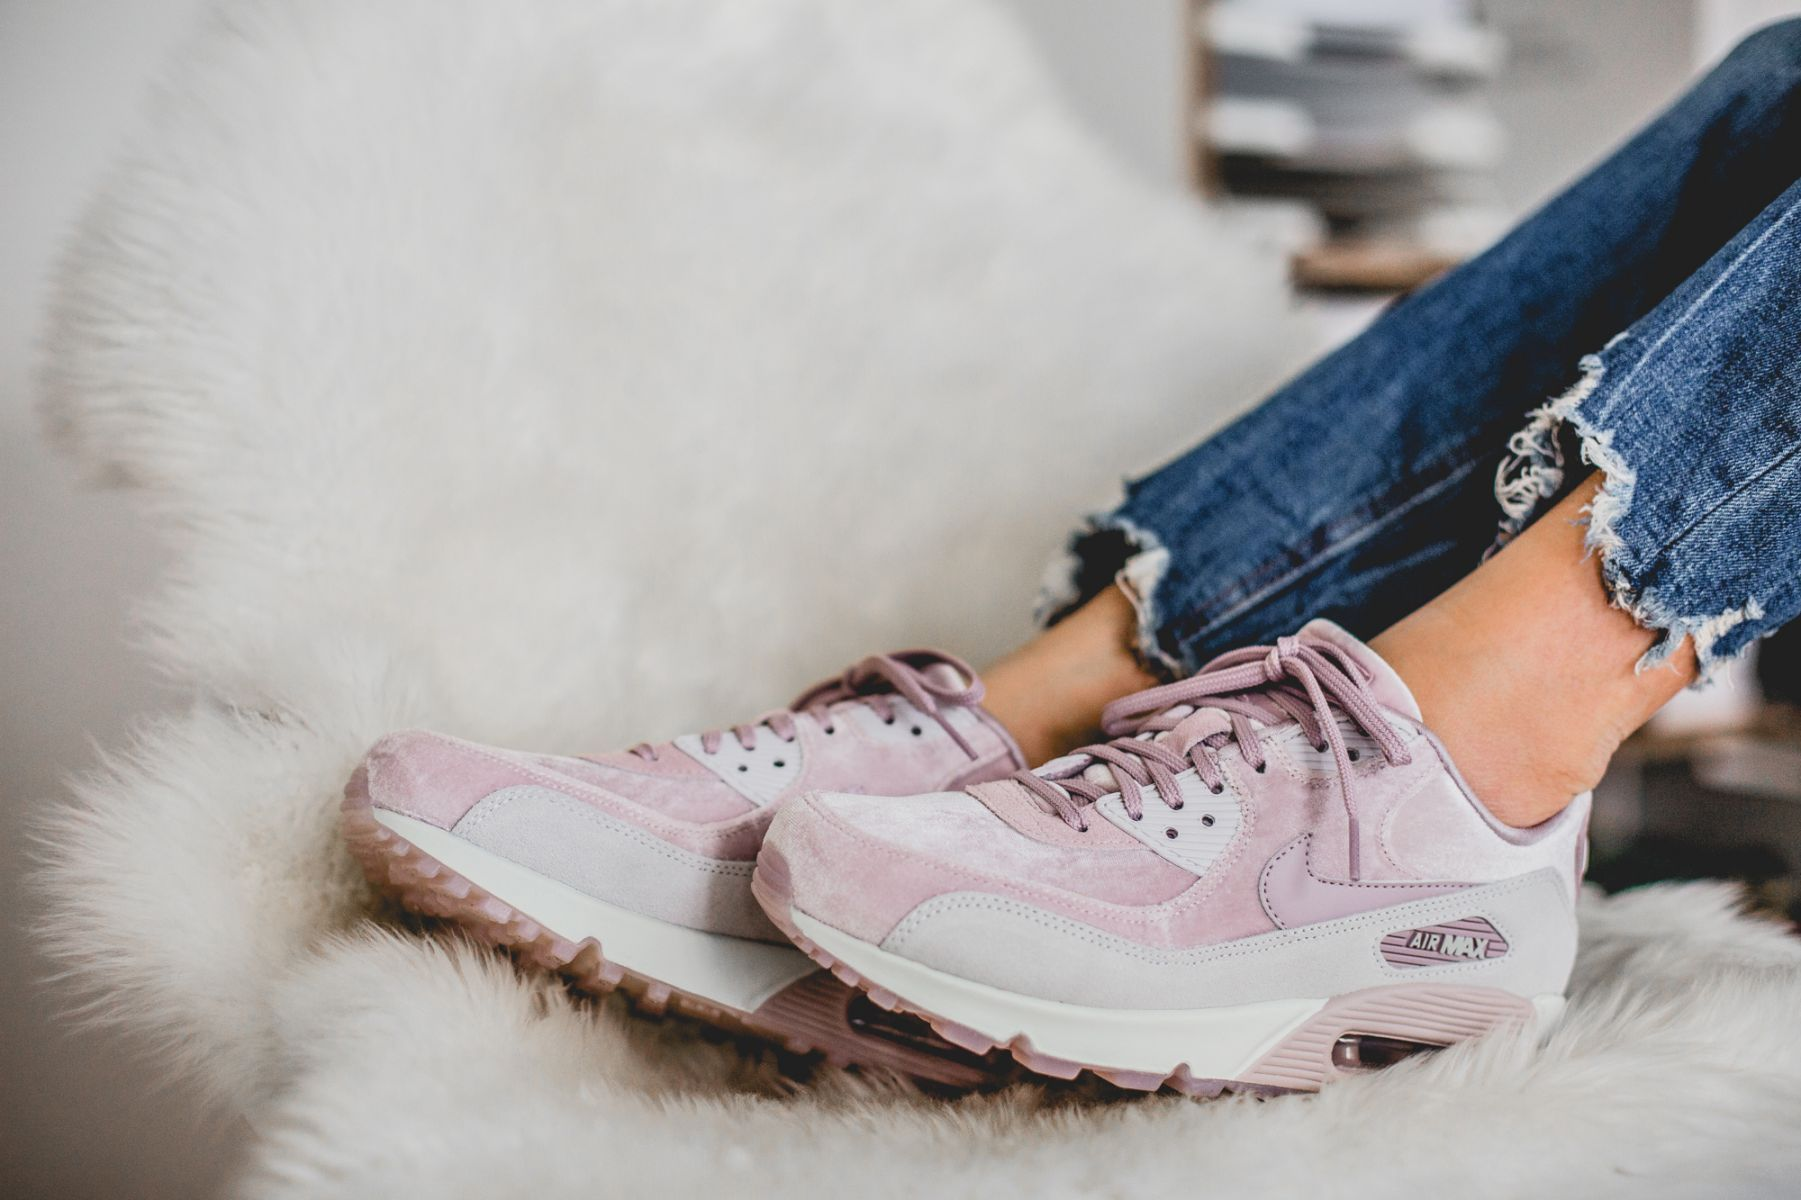 lowest price 277f3 1e843 NIKE WMNS AIR MAX 90 LX DELUXE CLOUD PLUSH PARTICLE ROSE 898512 600